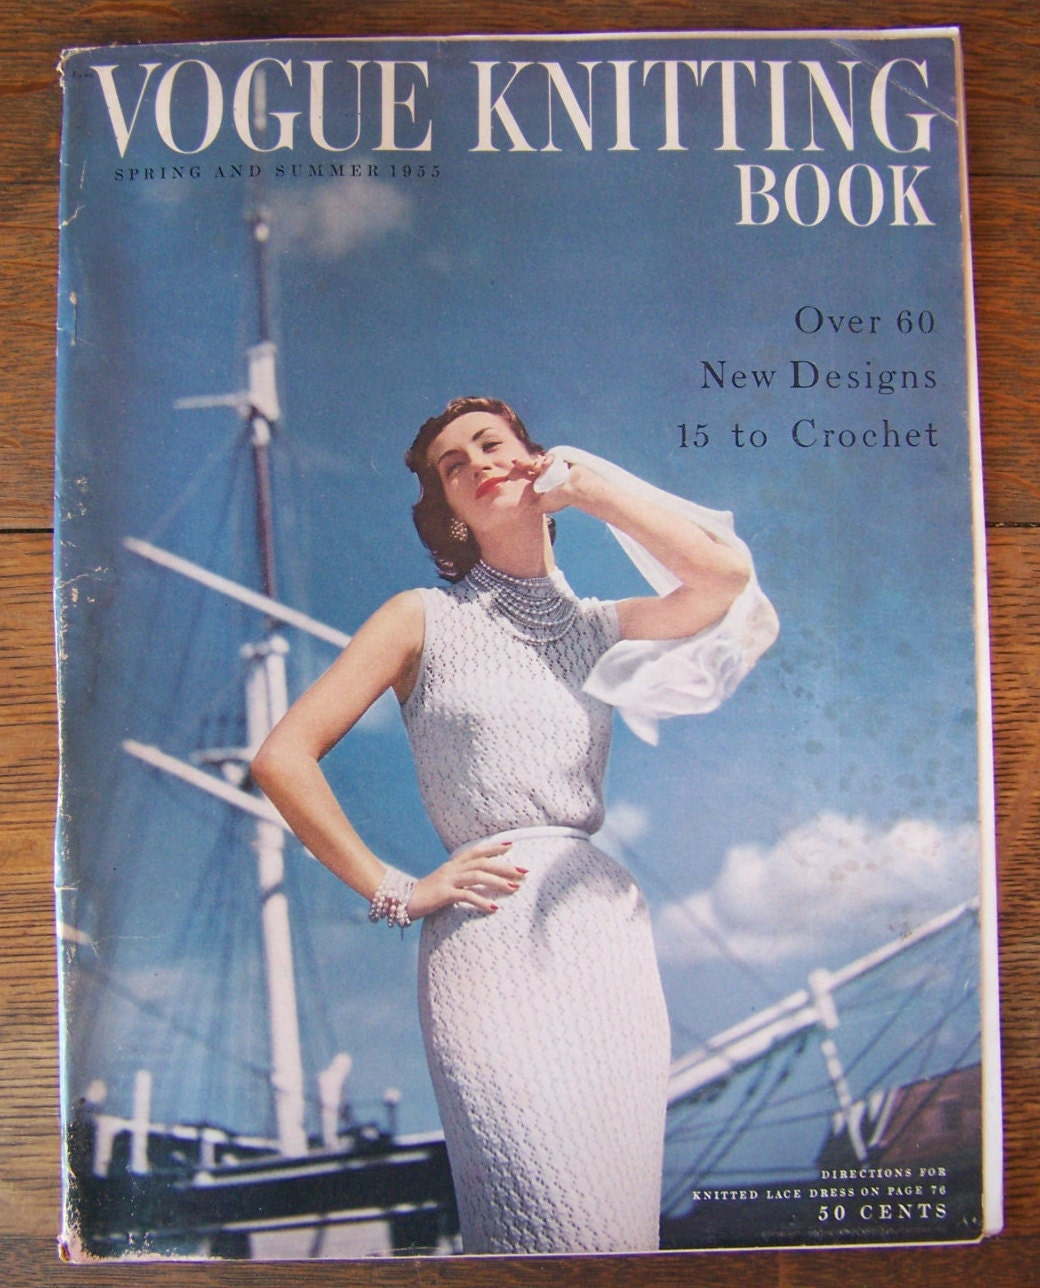 Vintage vogue knitting book 1955 spring and summerntage 1950s sold by lesaestes bankloansurffo Choice Image